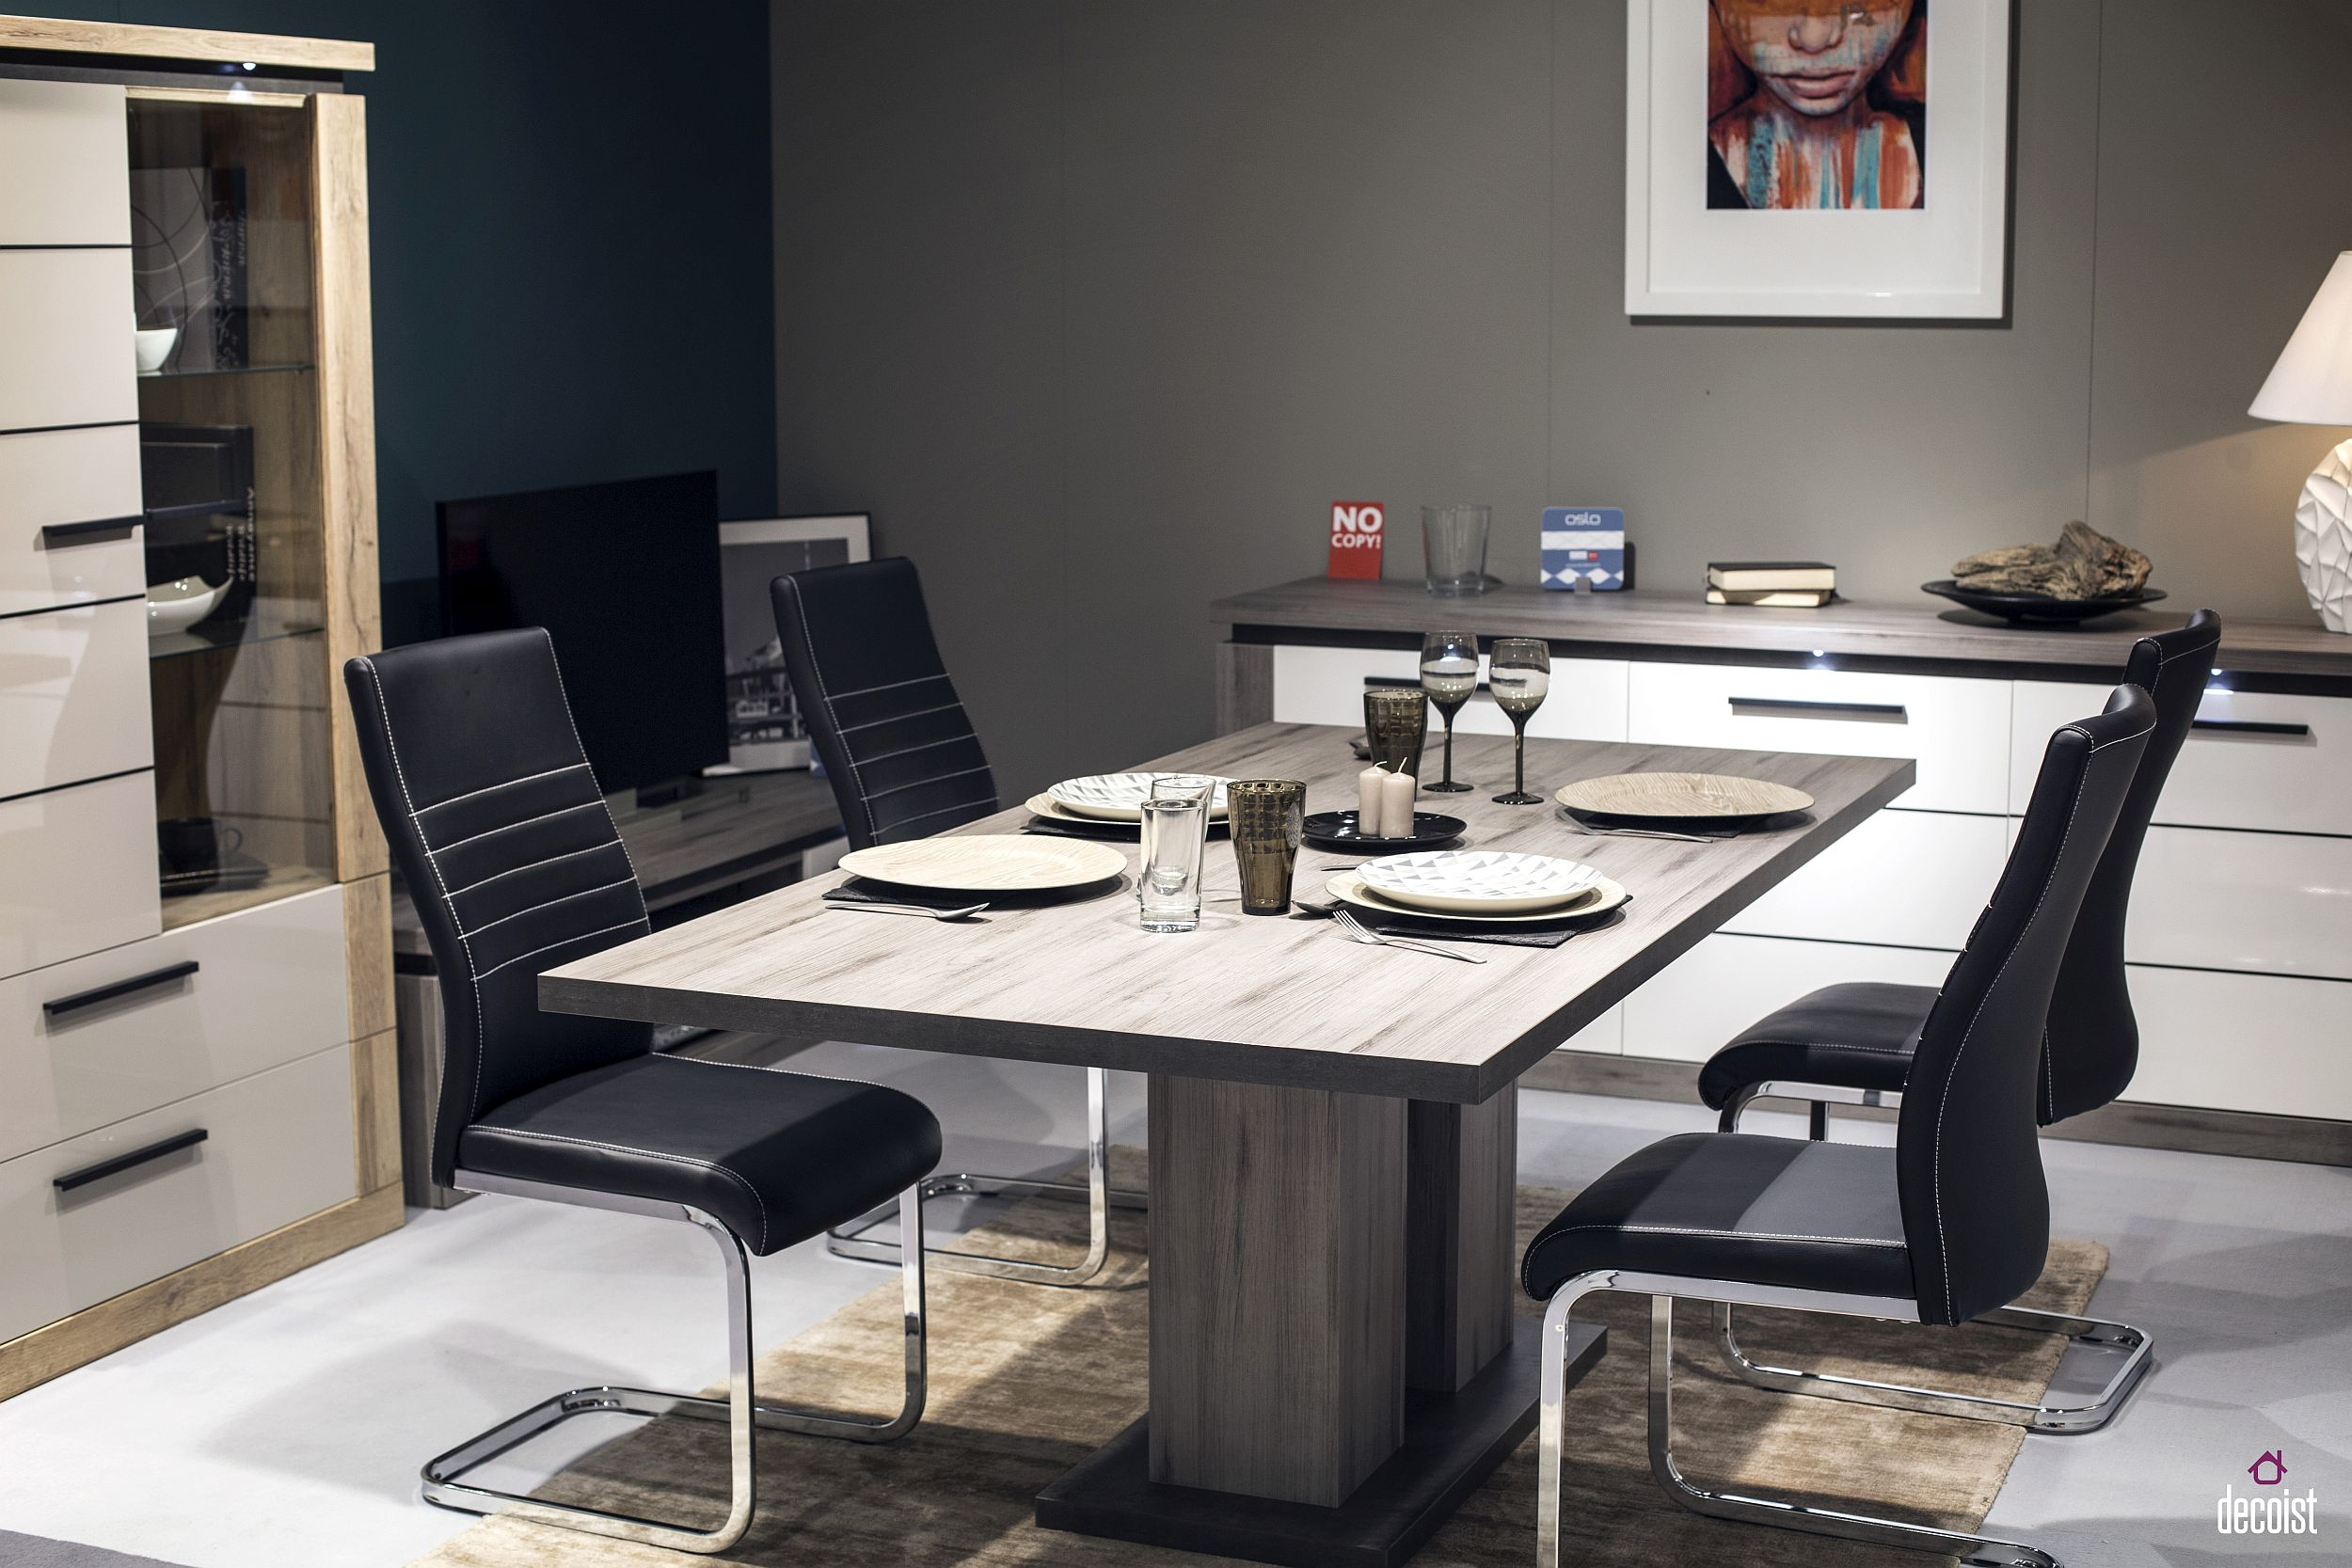 Polished-contemporary-dining-room-from-Sciane-with-wooden-dining-table